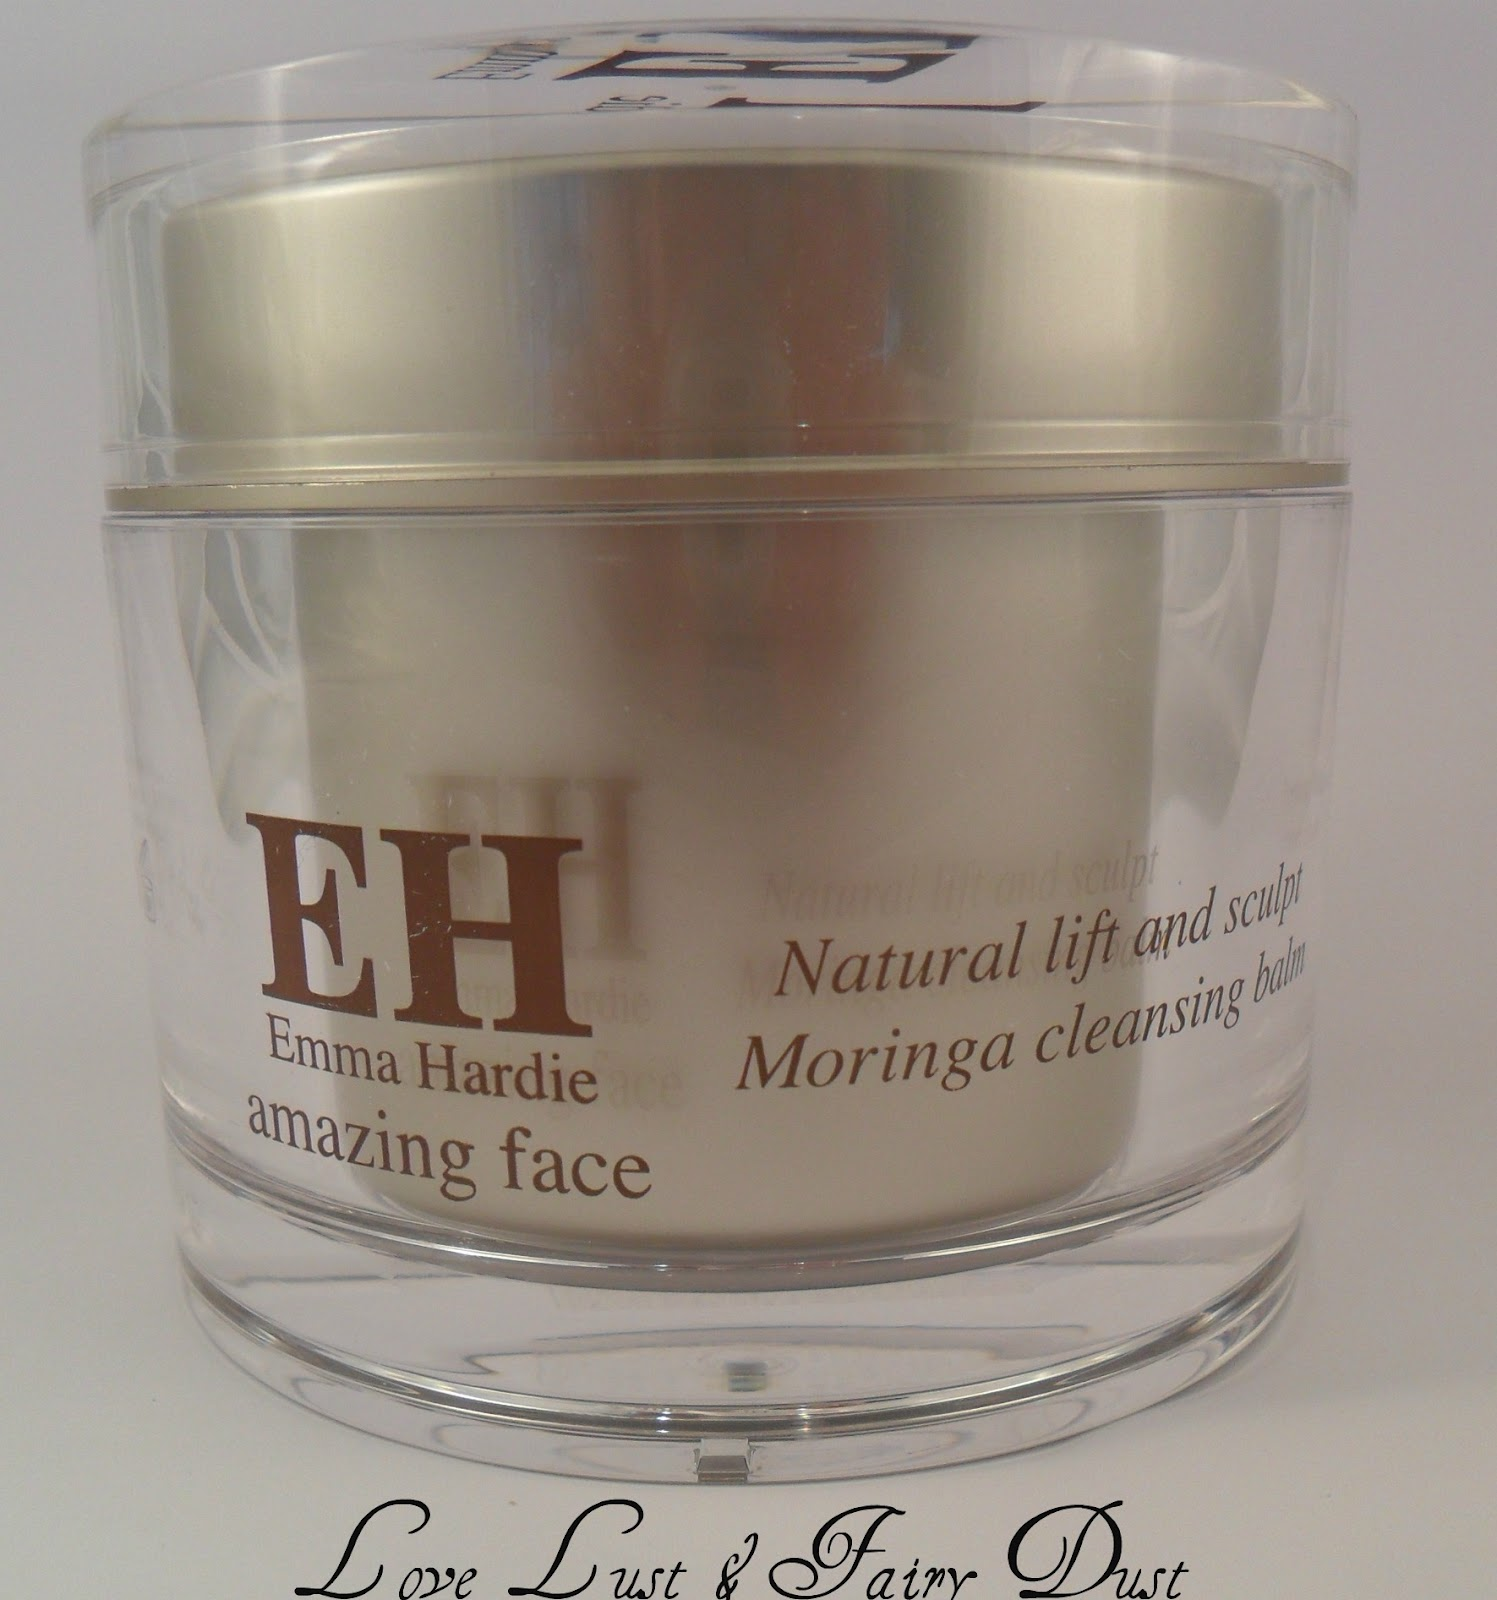 Emma Hardie Amazing Face Lift and Sculpt Moringa Cleansing Balm